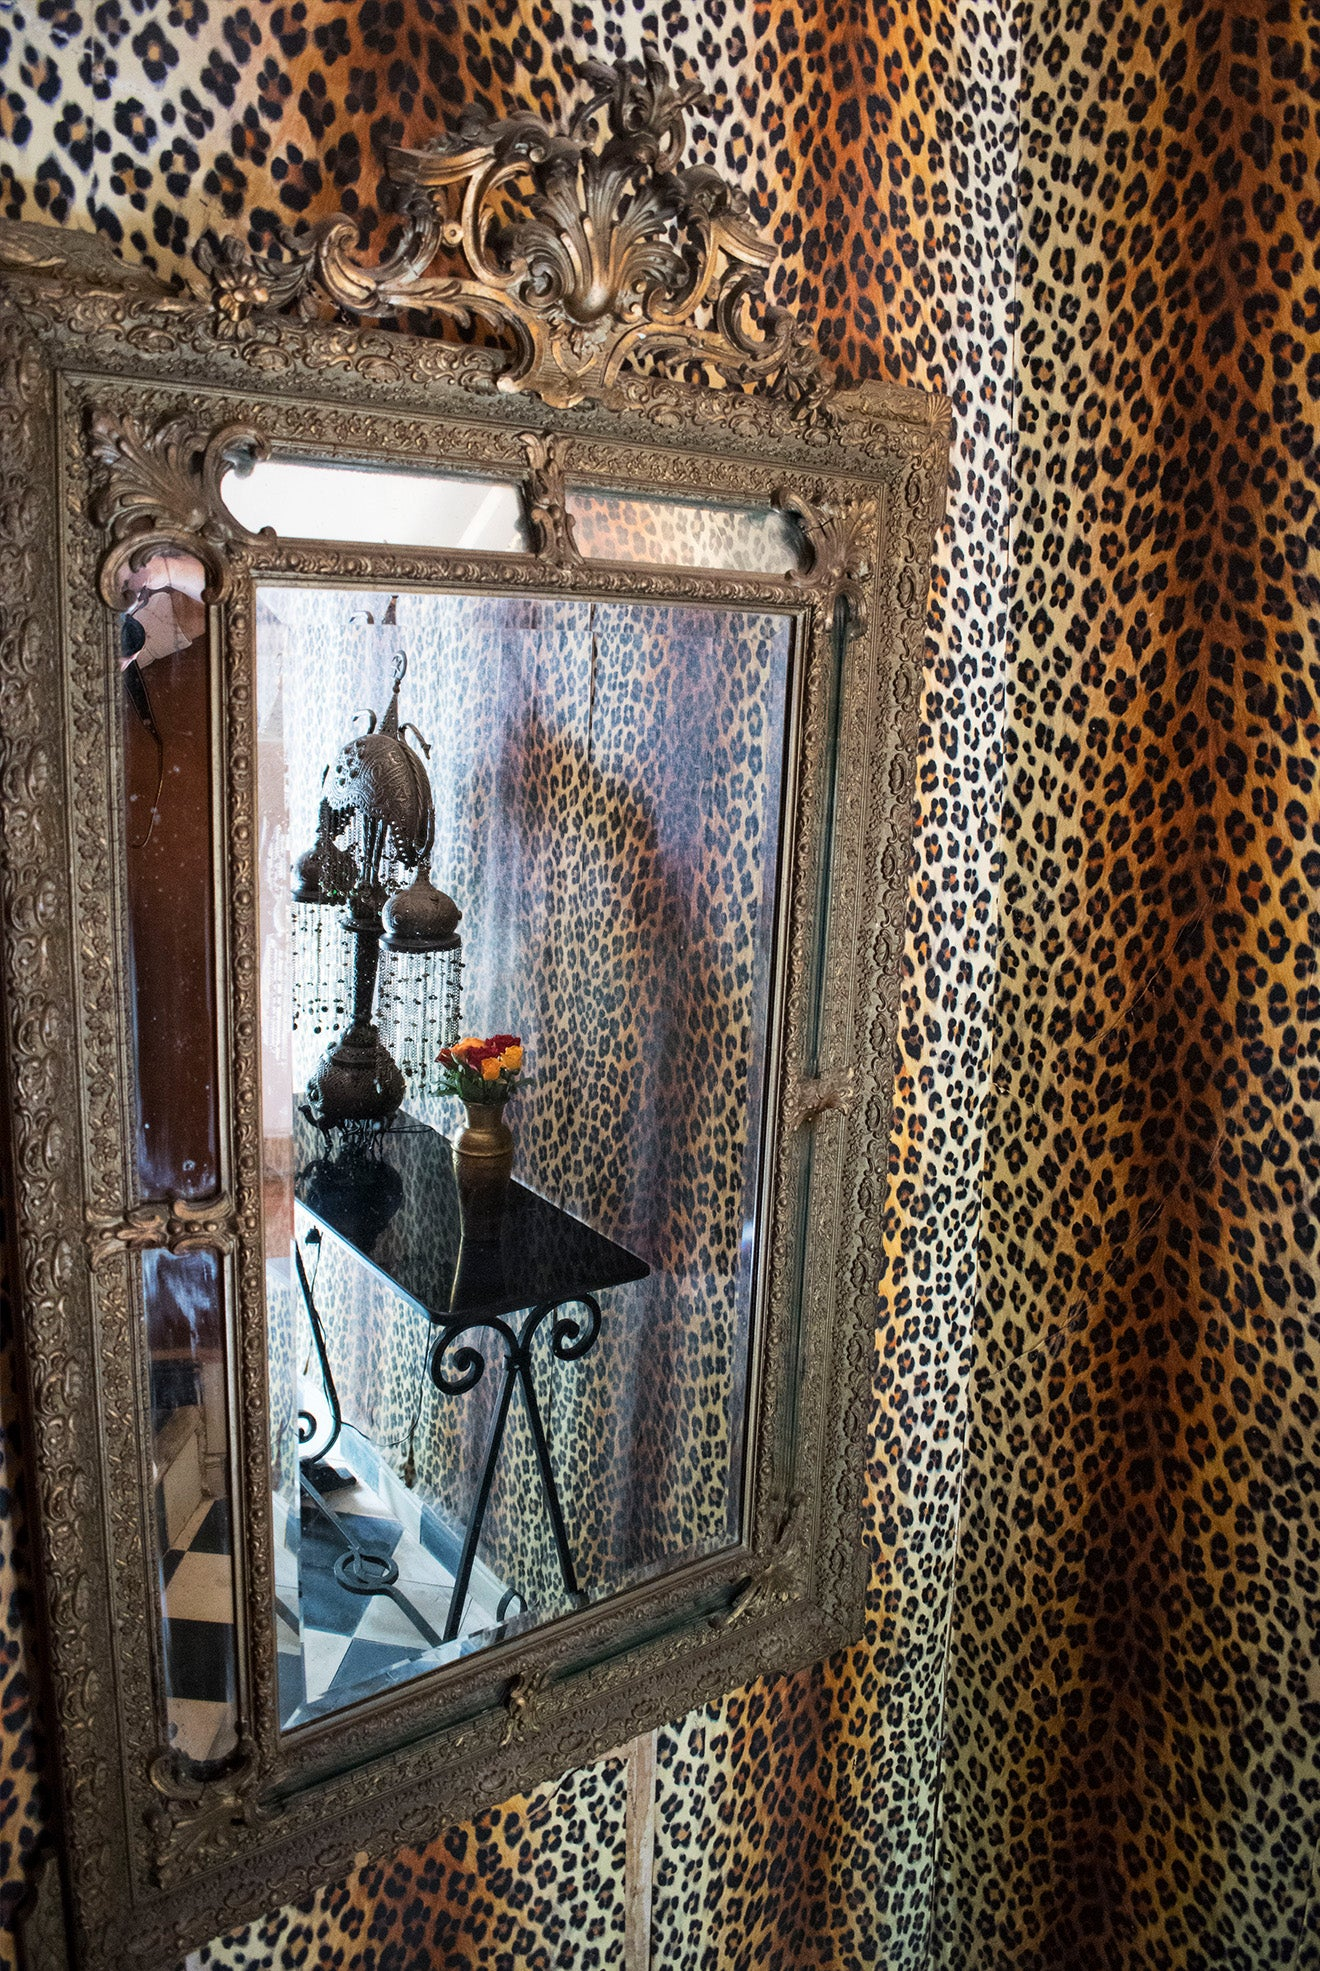 Dar Jaguar hotel design with Leopard print wallpaper